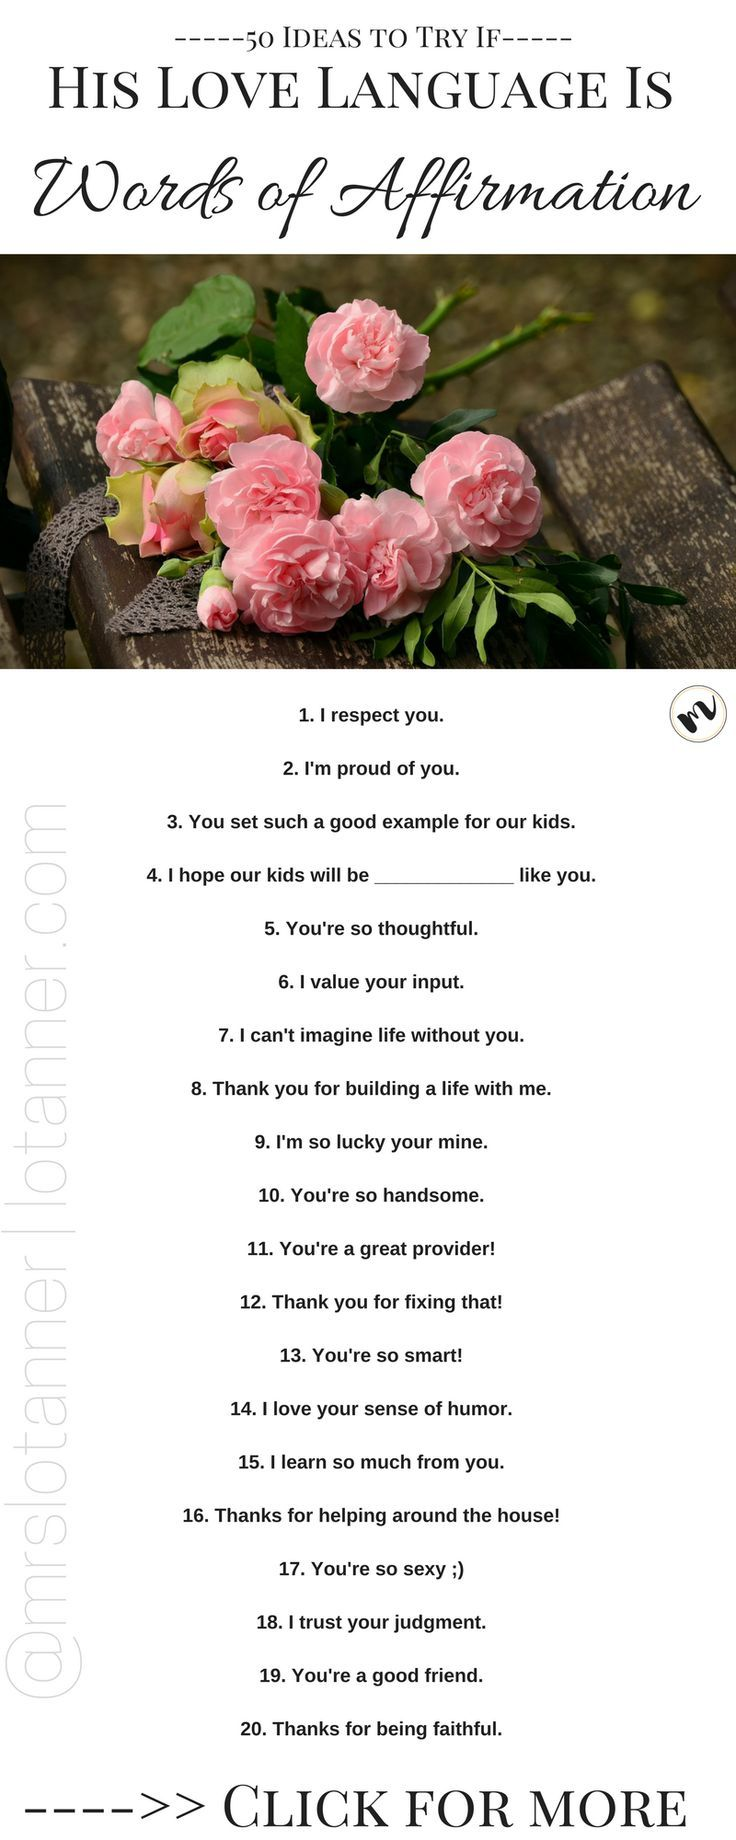 50 starter phrases, one-liners, and creative ideas you can use to show your husband you love him if his primary love language is Words of Affirmation.  http://www.lotanner.com/love-languages-words-of-affirmation @mrslotanner